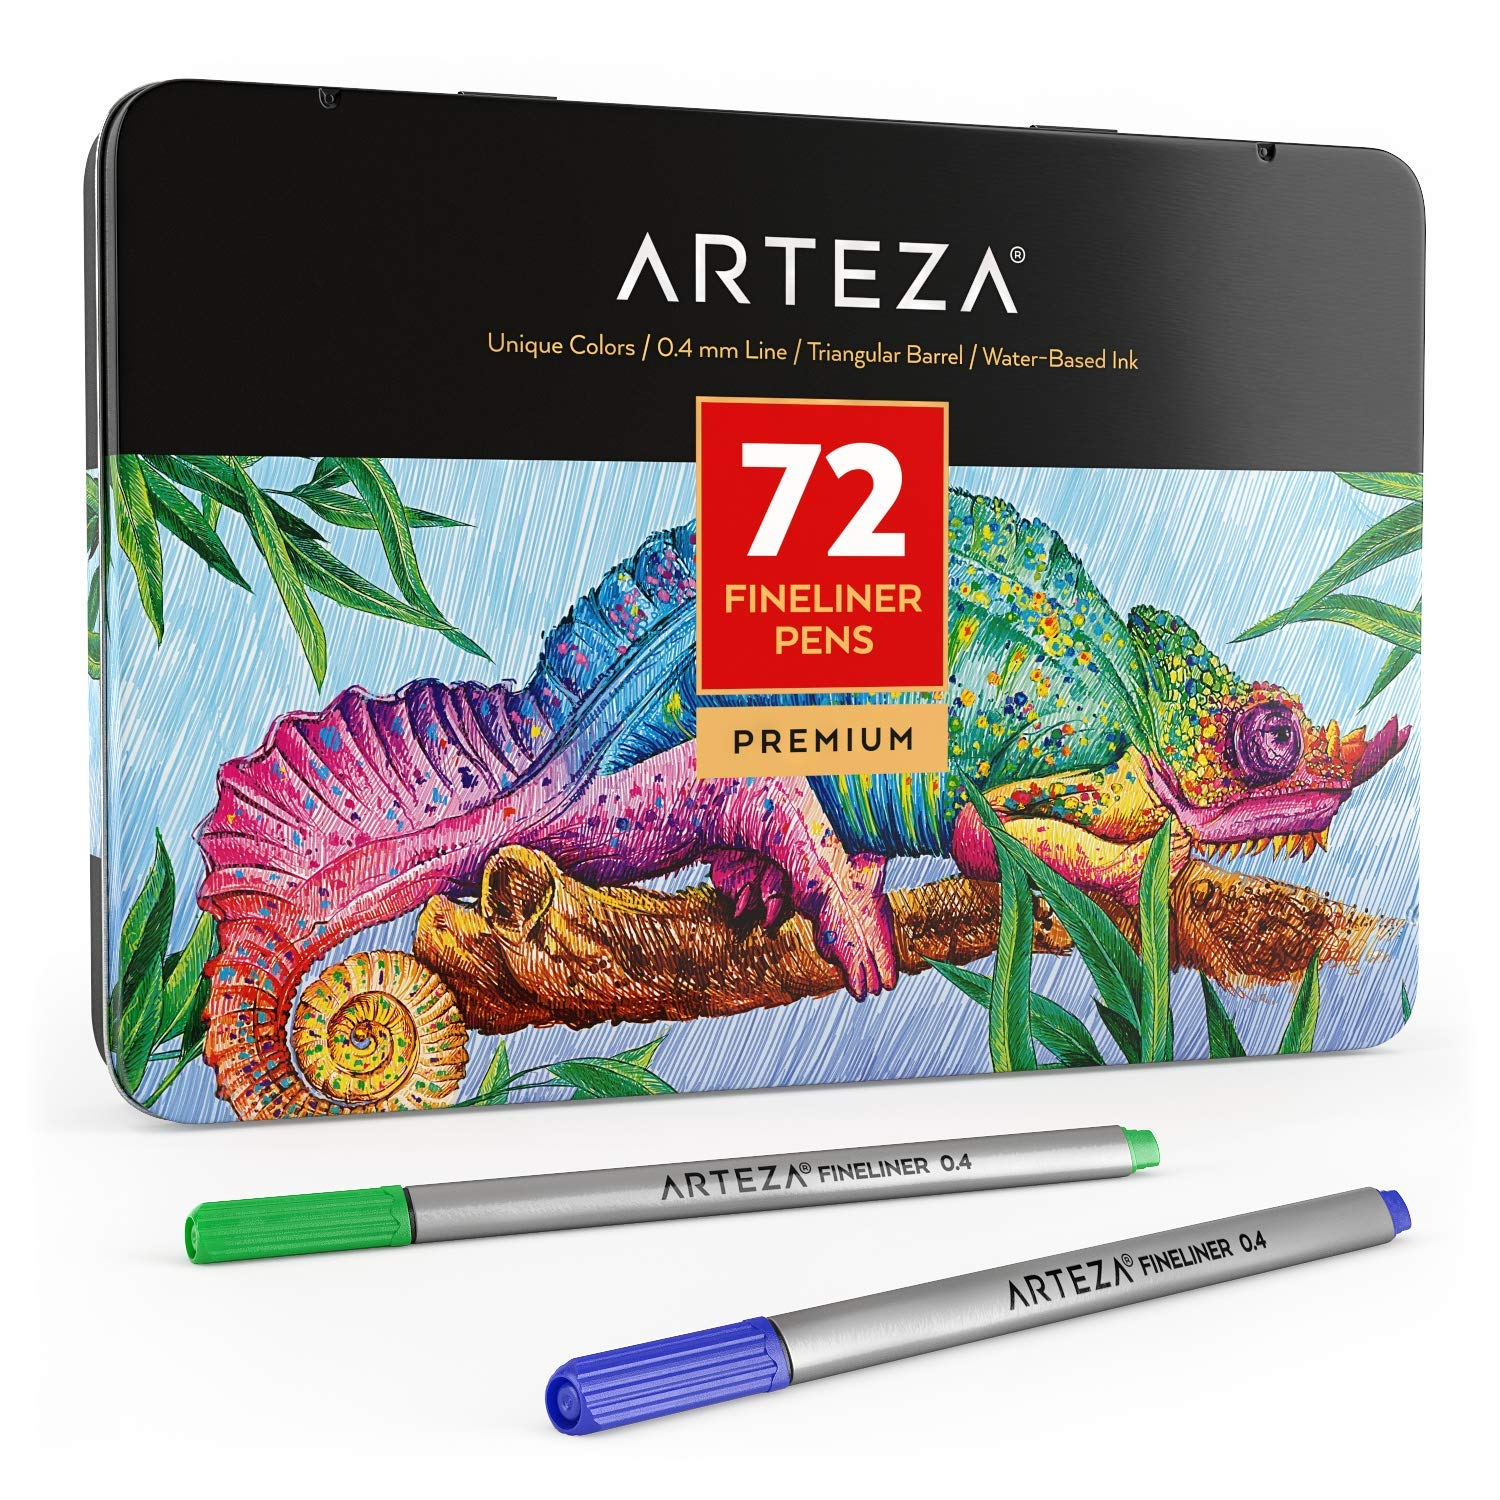 ARTEZA Fineliners Fine Point Pens, Set of 72 Fine Tip Markers with 0.4mm Tips & Sure Grip Ergonomic Barrels, Brilliant Assorted Colors for Coloring, Drawing & Detailing + Sturdy Metal Storage Case by ARTEZA